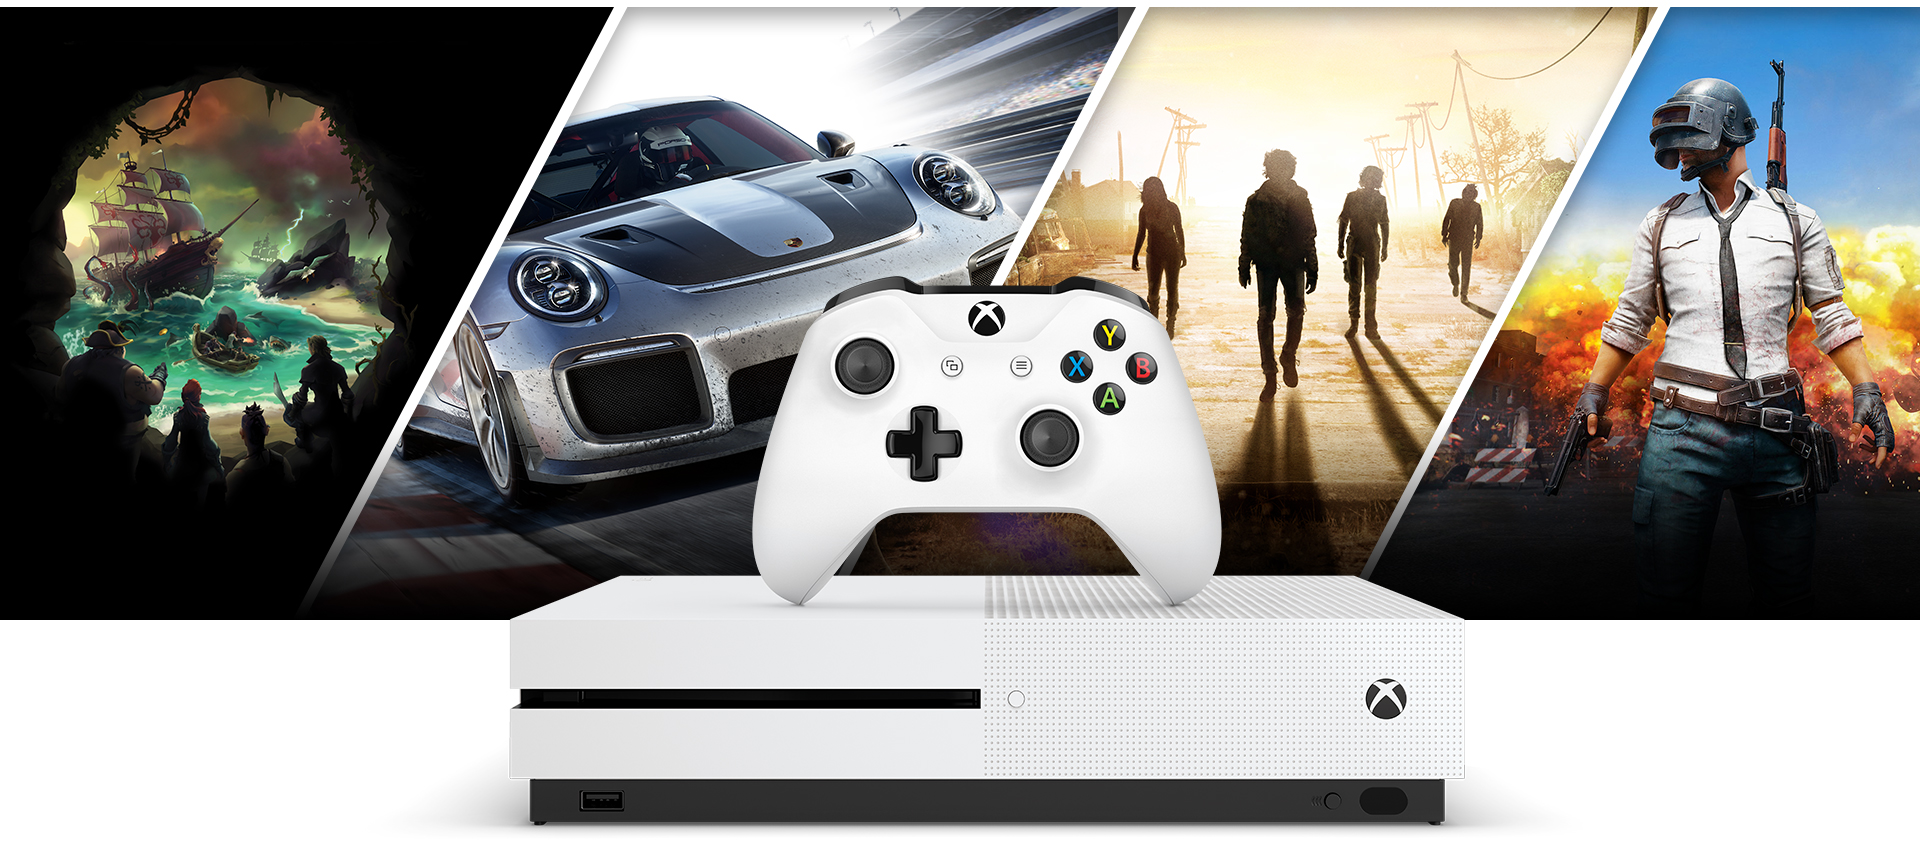 Gráficos do Sea of Thieves, Forza 7, State of Decay 3 e Player Unknown's Battlegrounds atrás de uma Xbox One S e um Comando Xbox Branco